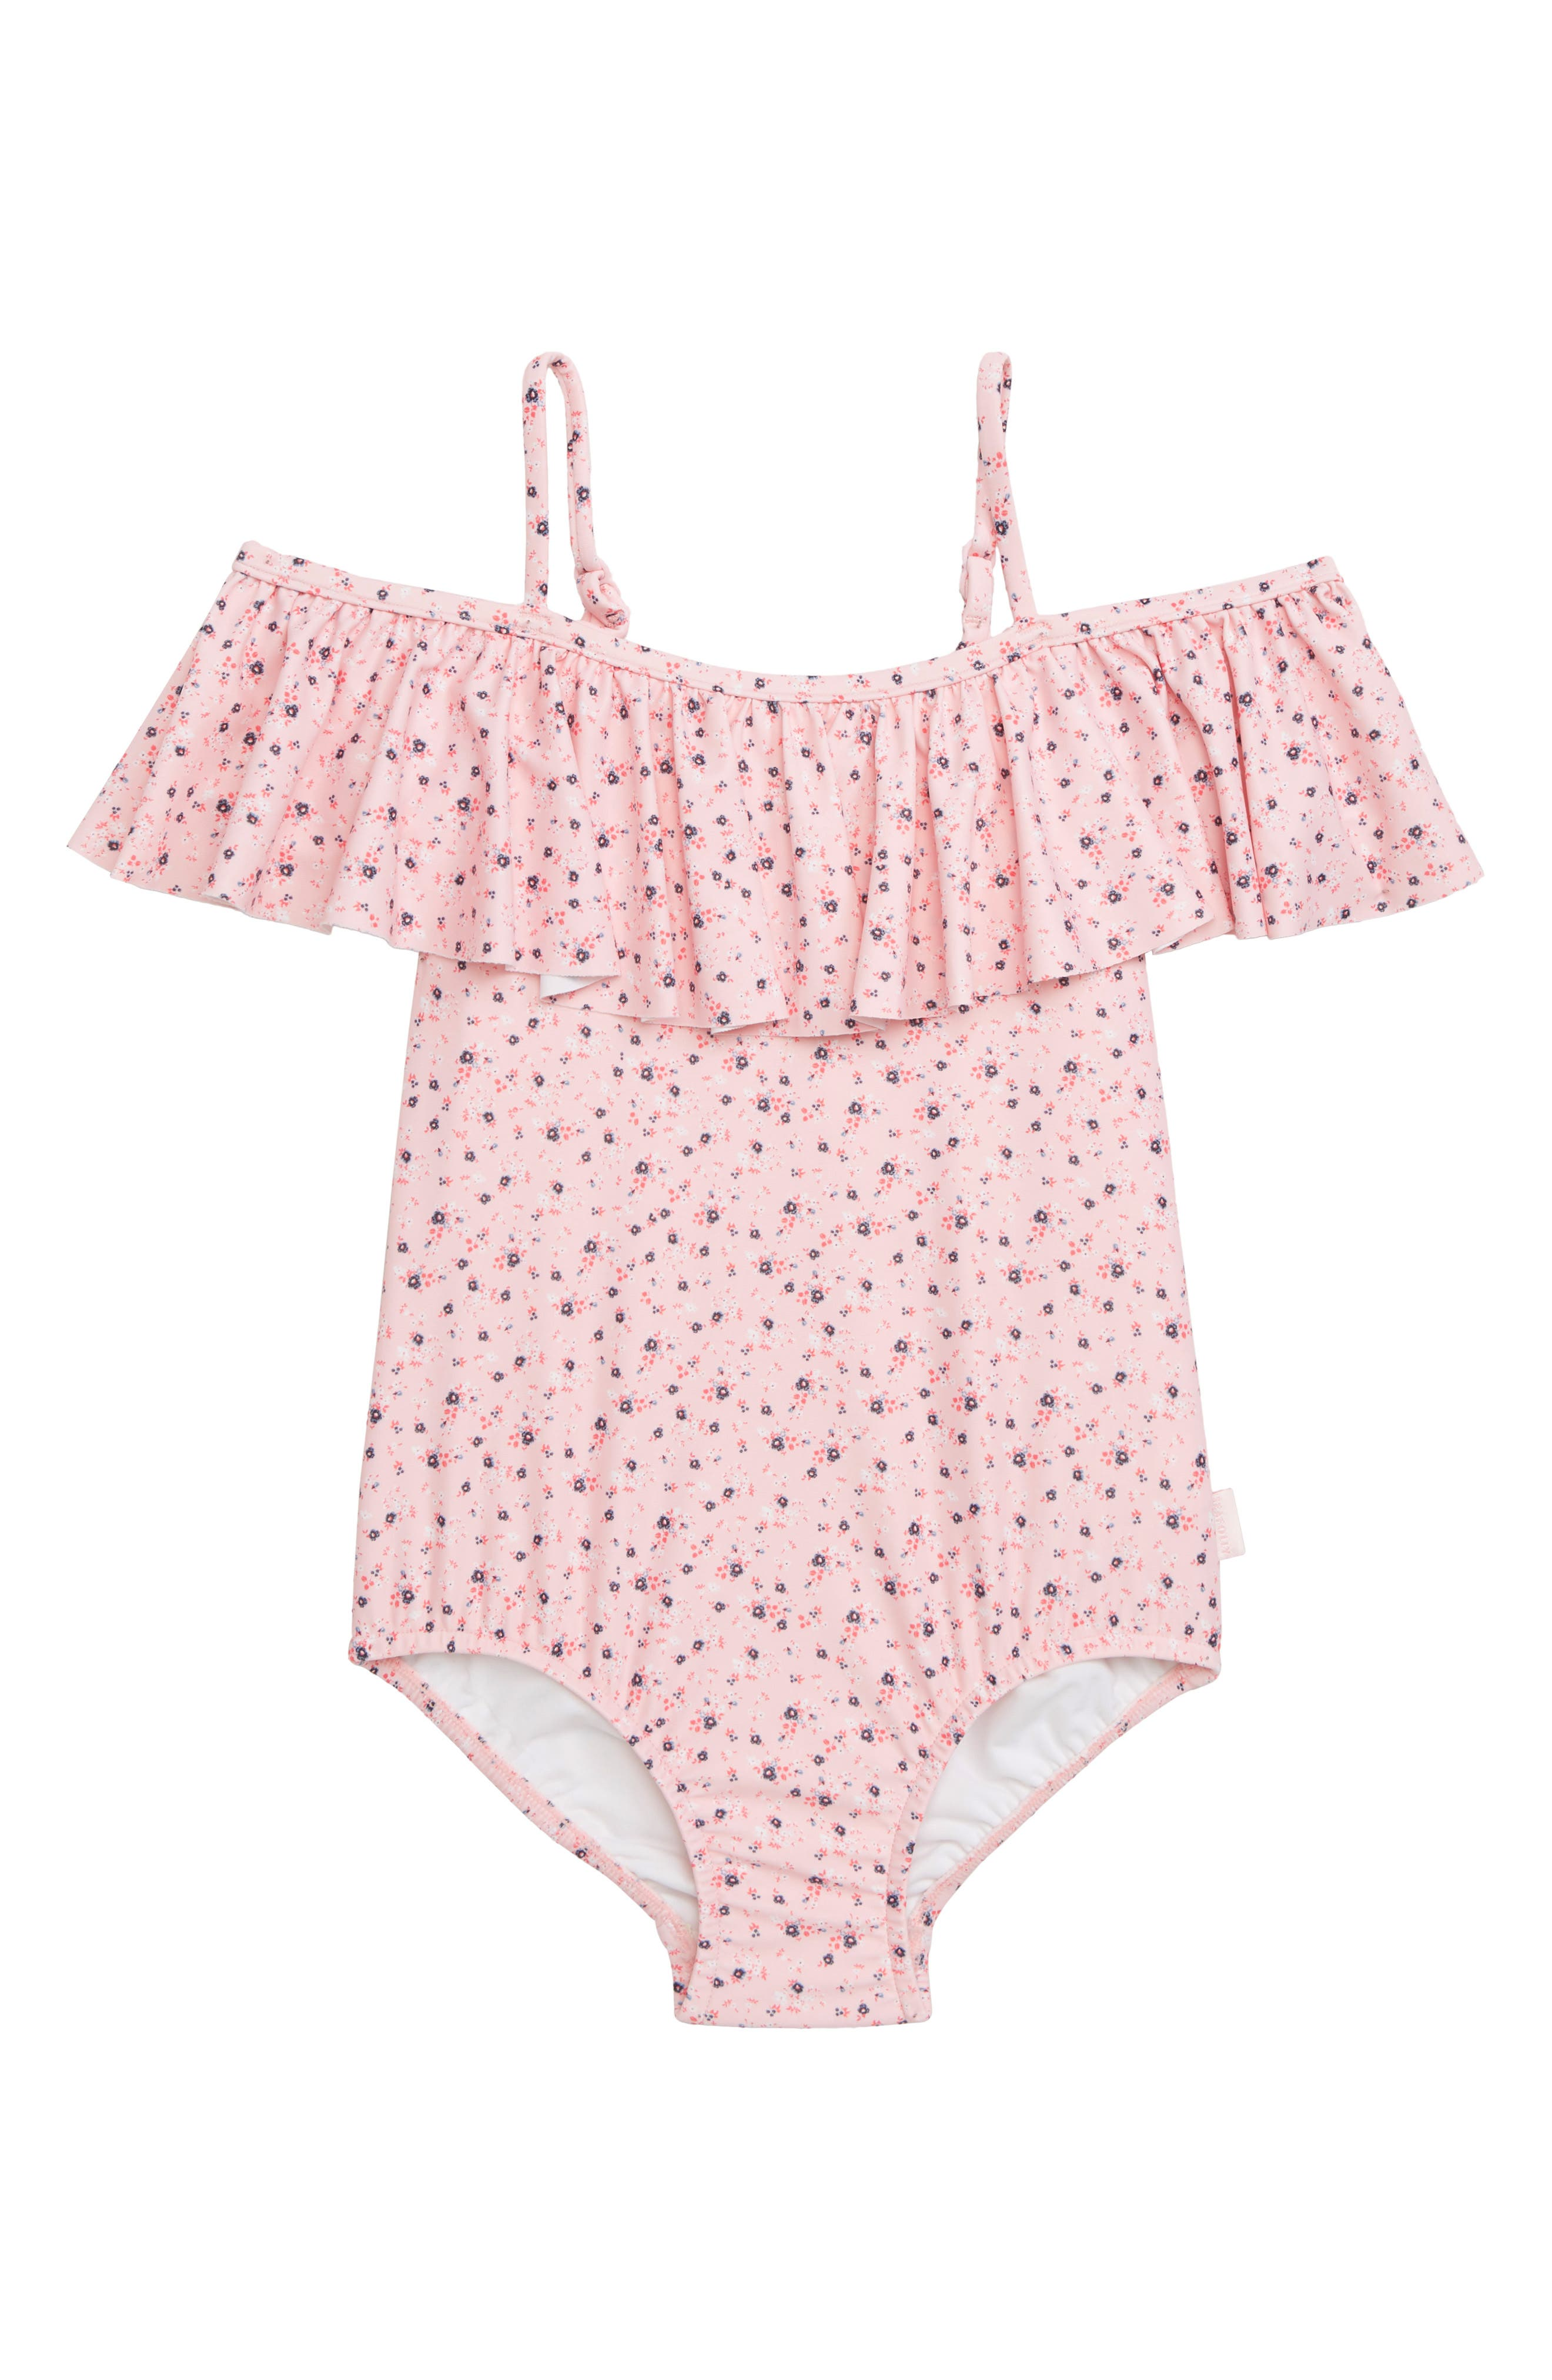 Beach Rose Ruffle One-Piece Swimsuit,                             Main thumbnail 1, color,                             BLOSSOM PINK